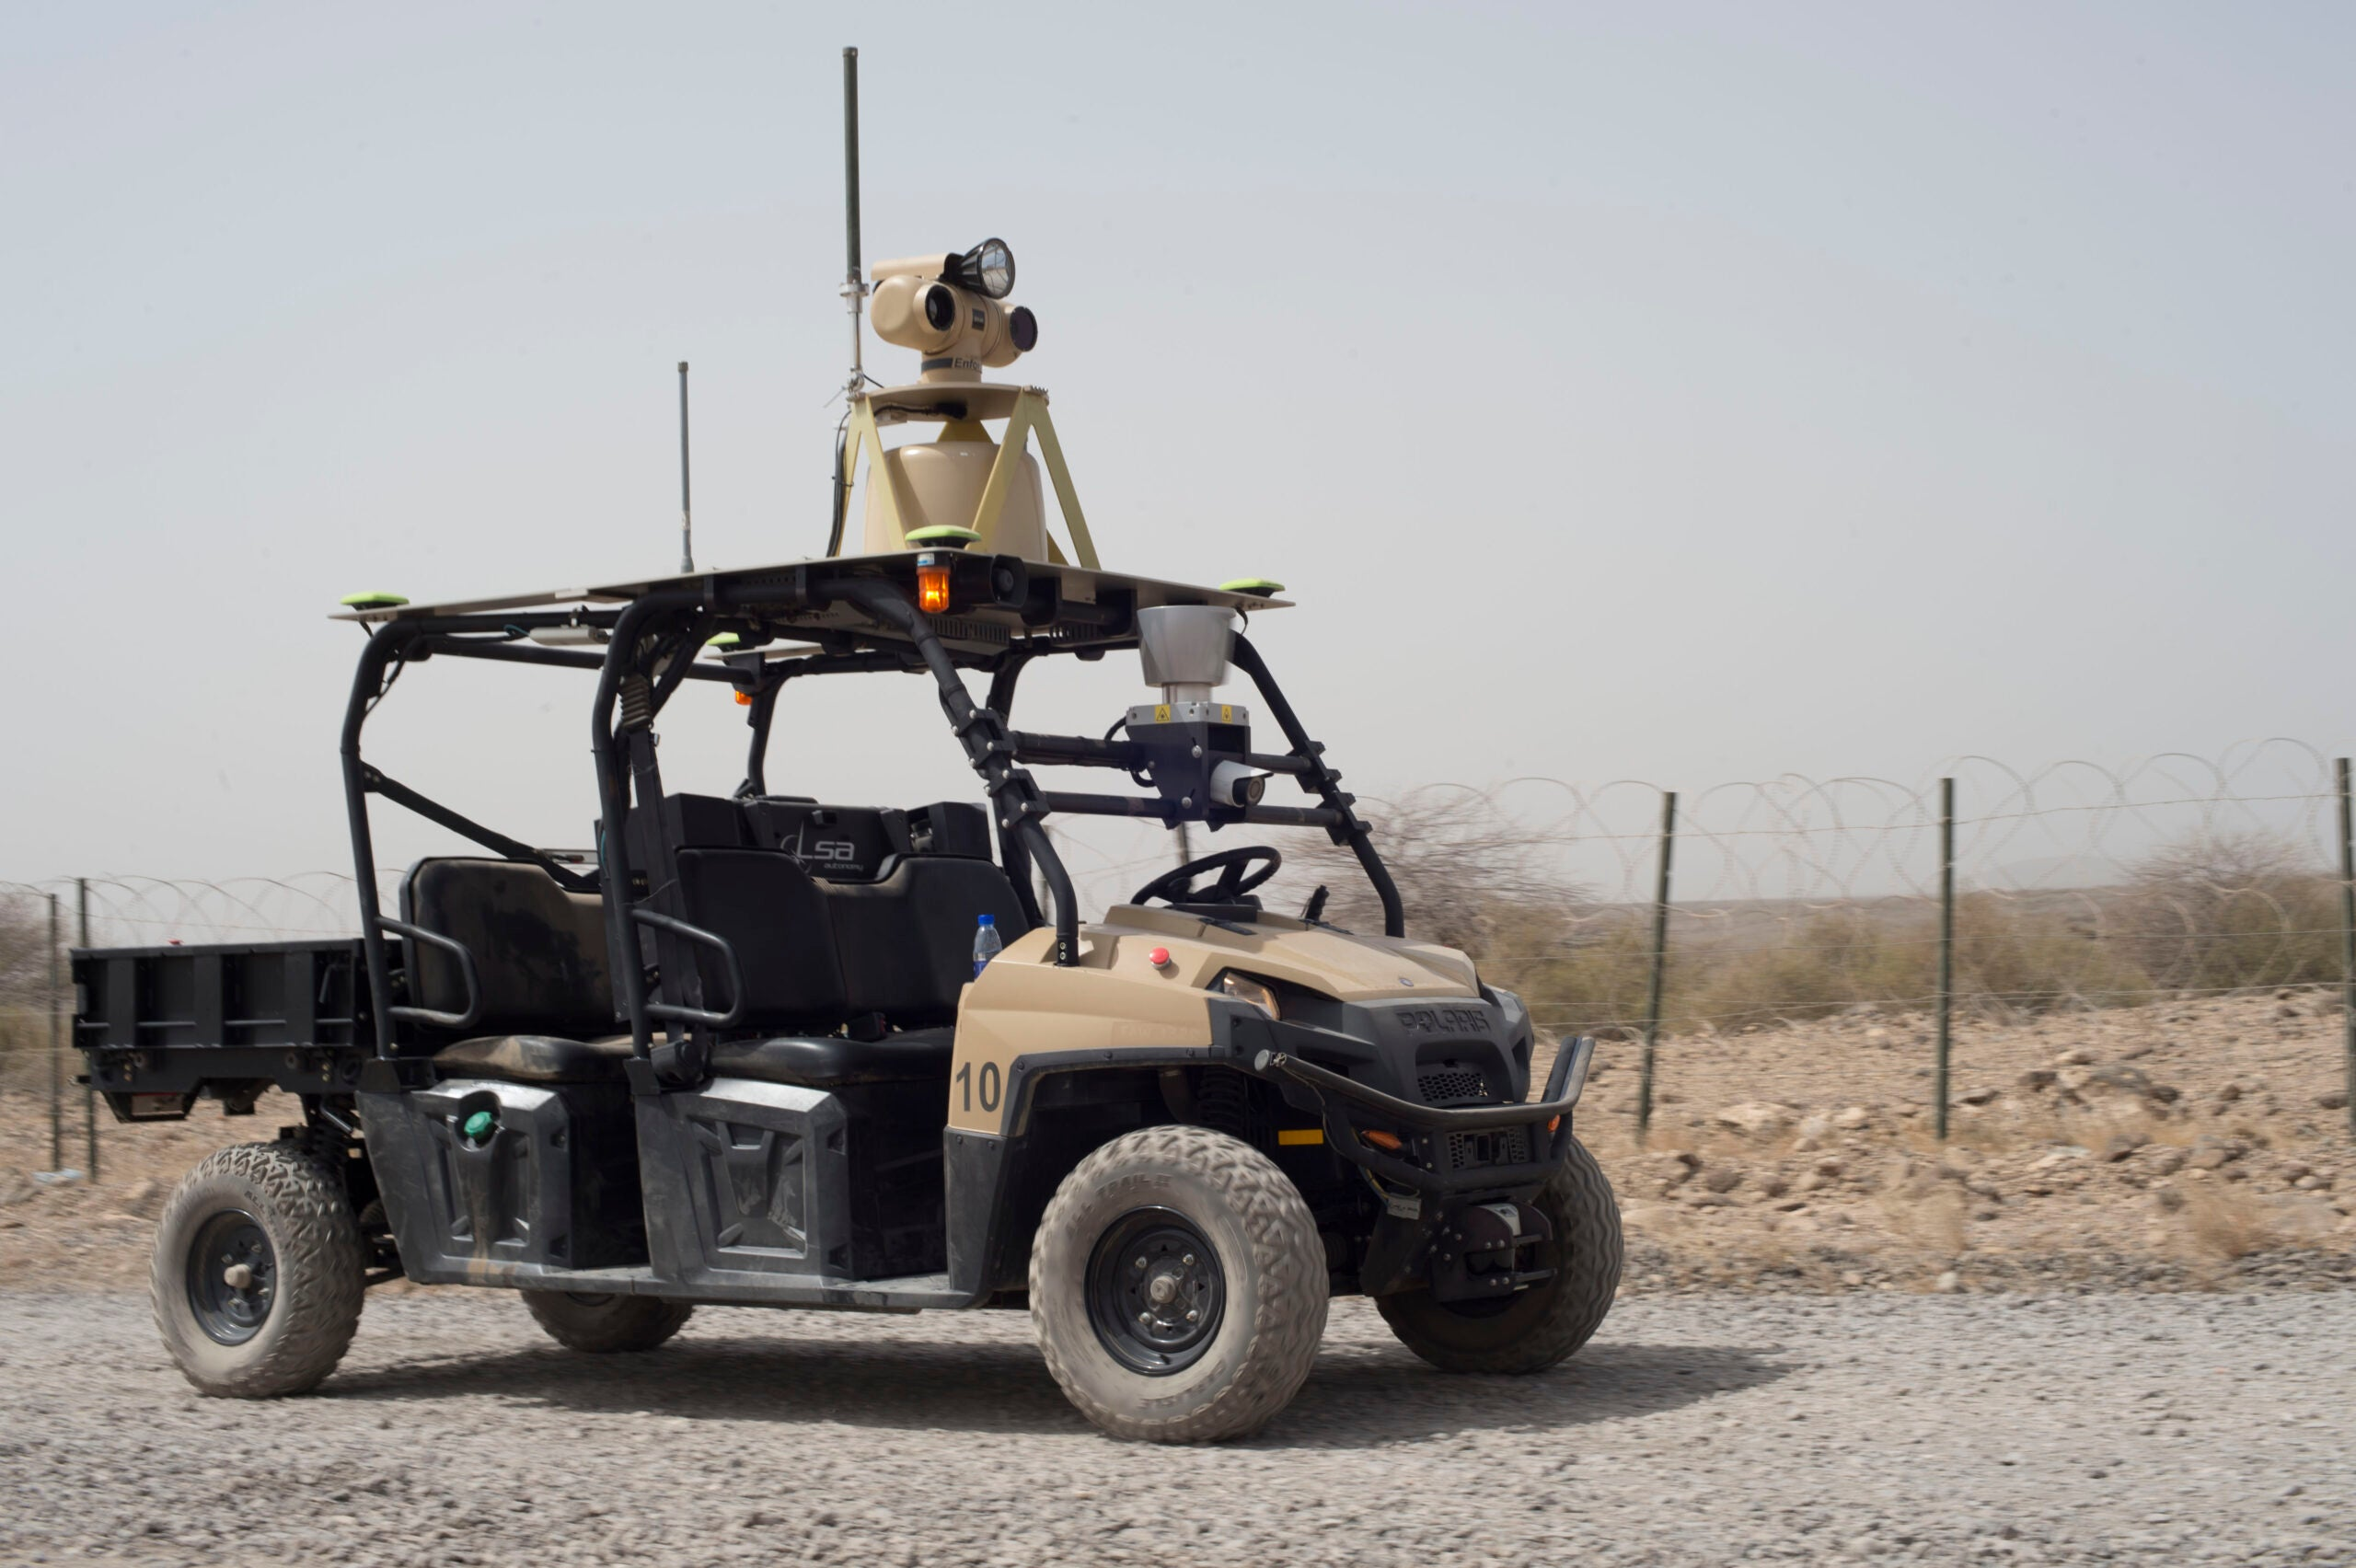 The U.S. Military Is Patrolling Djibouti With Robot Golf Carts